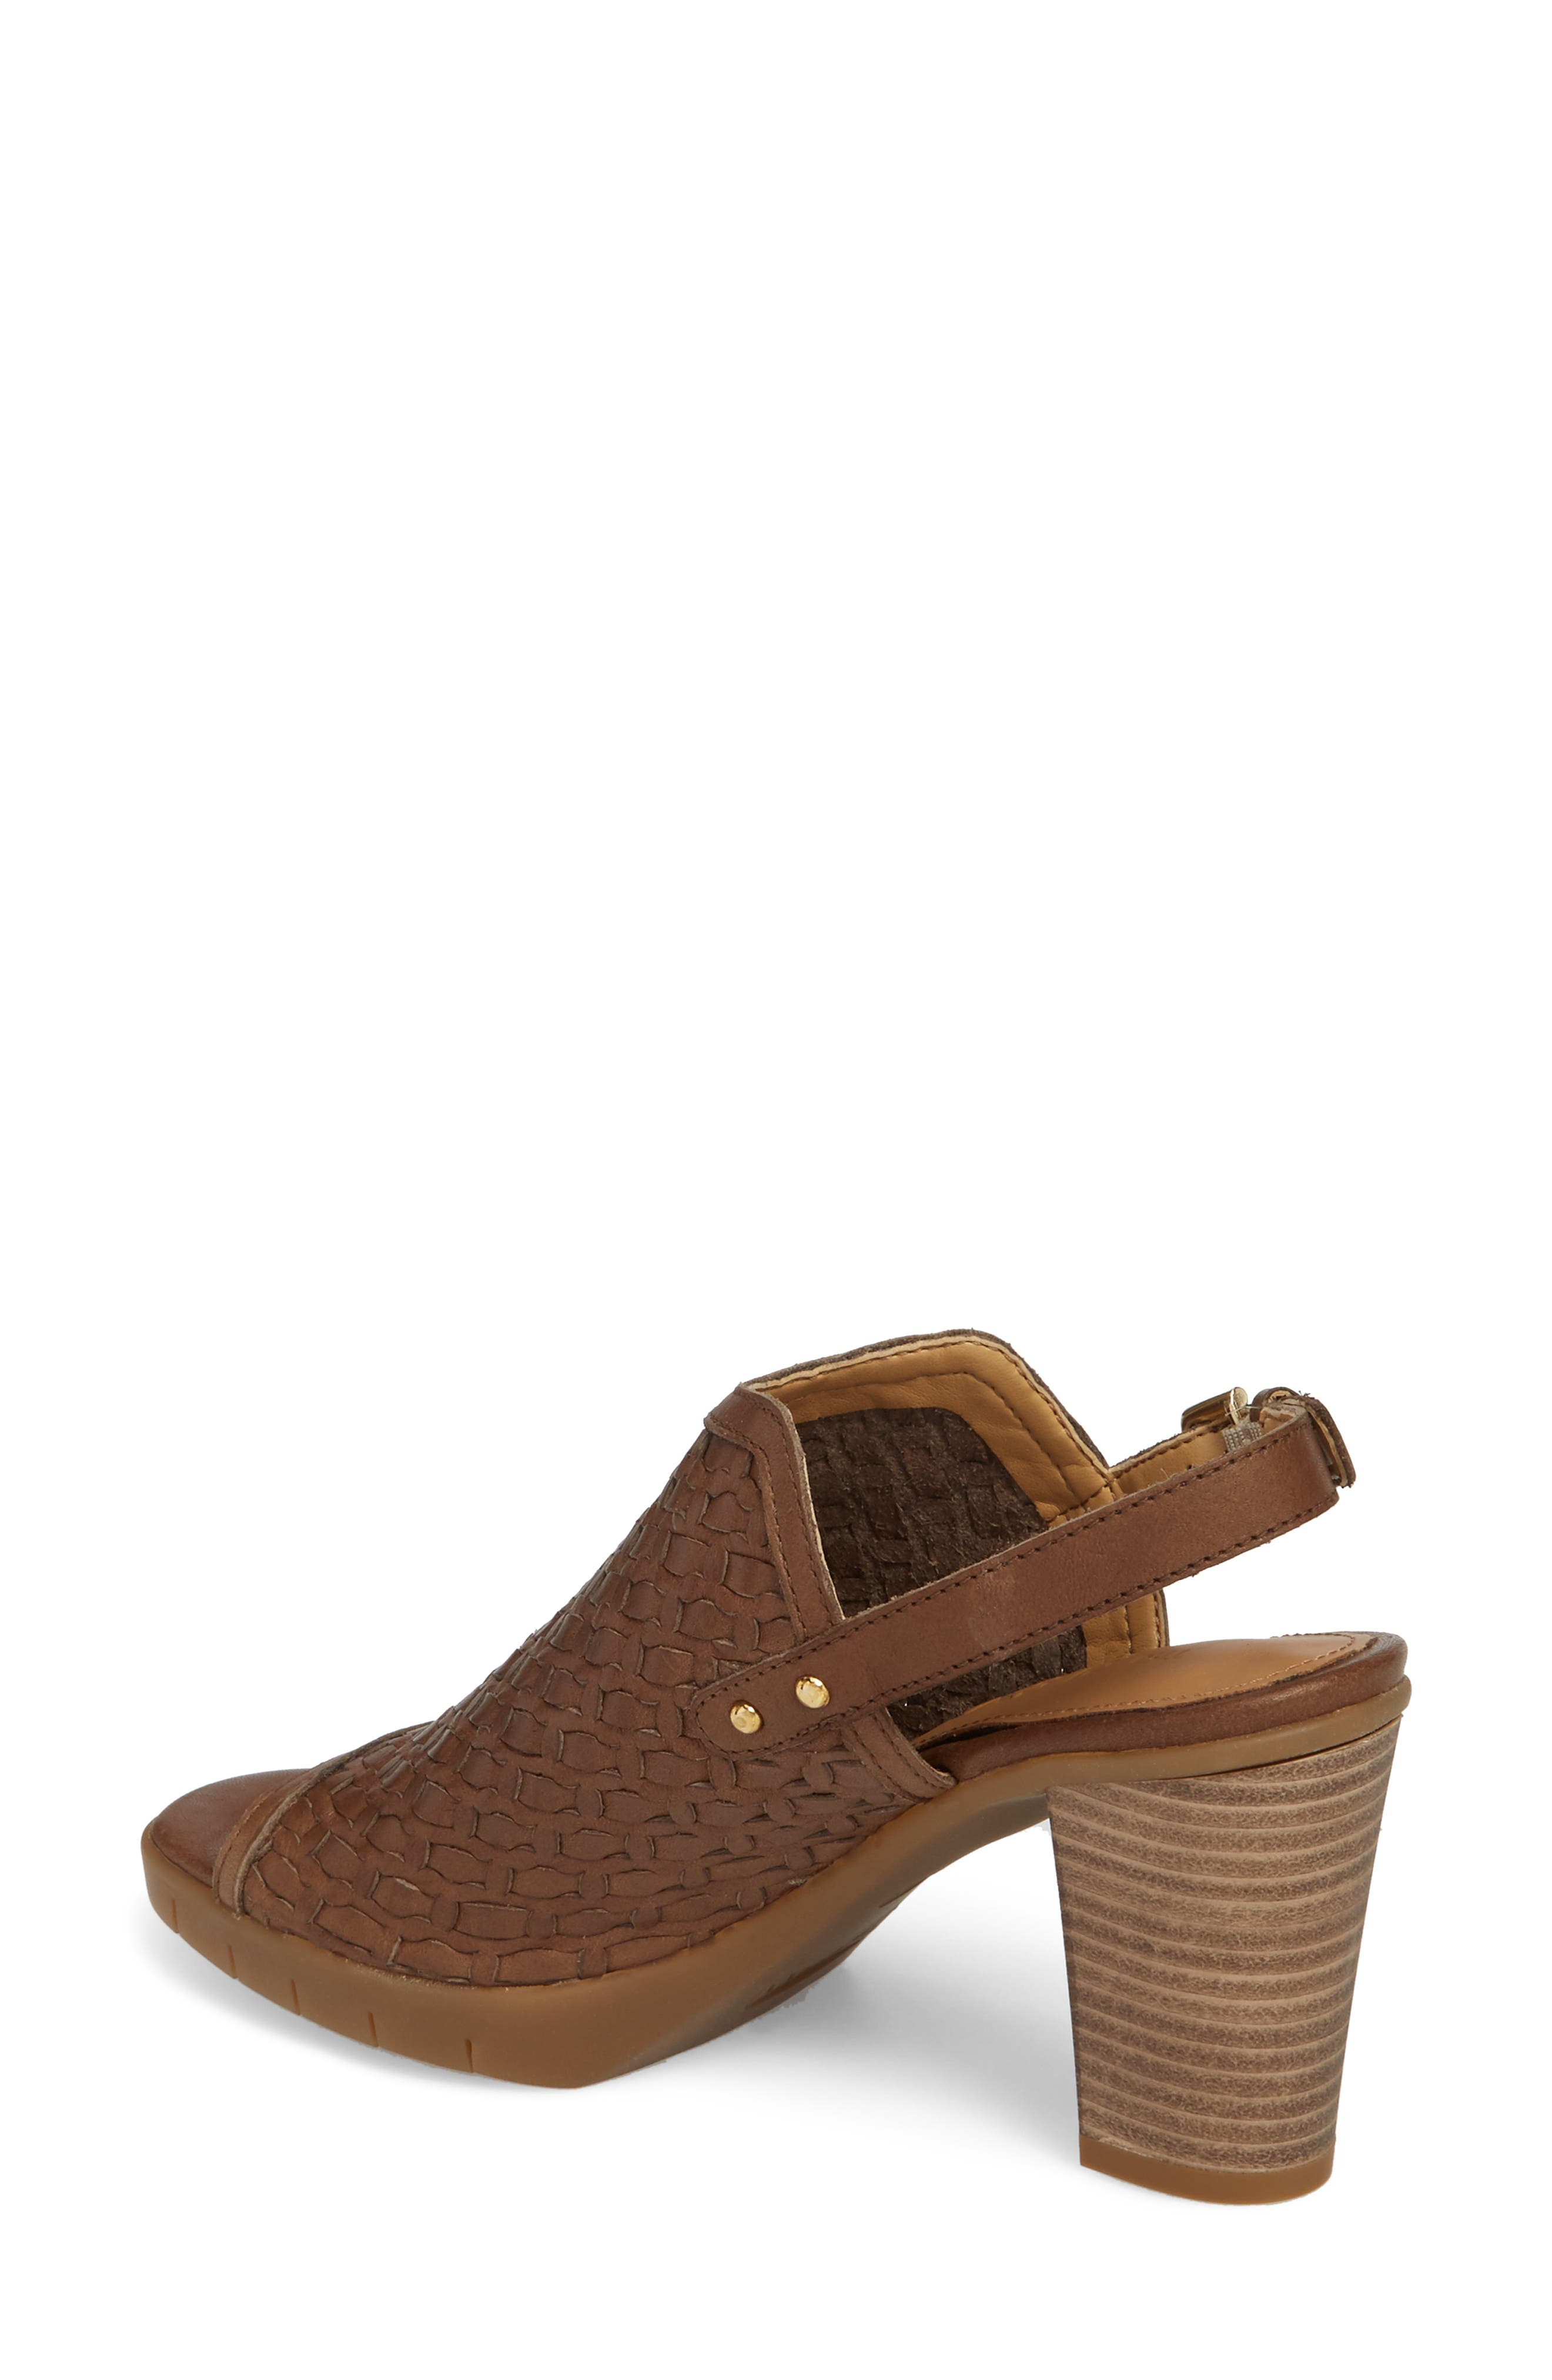 Weave Me Be Slingback Sandal,                             Alternate thumbnail 2, color,                             Chocolate Leather